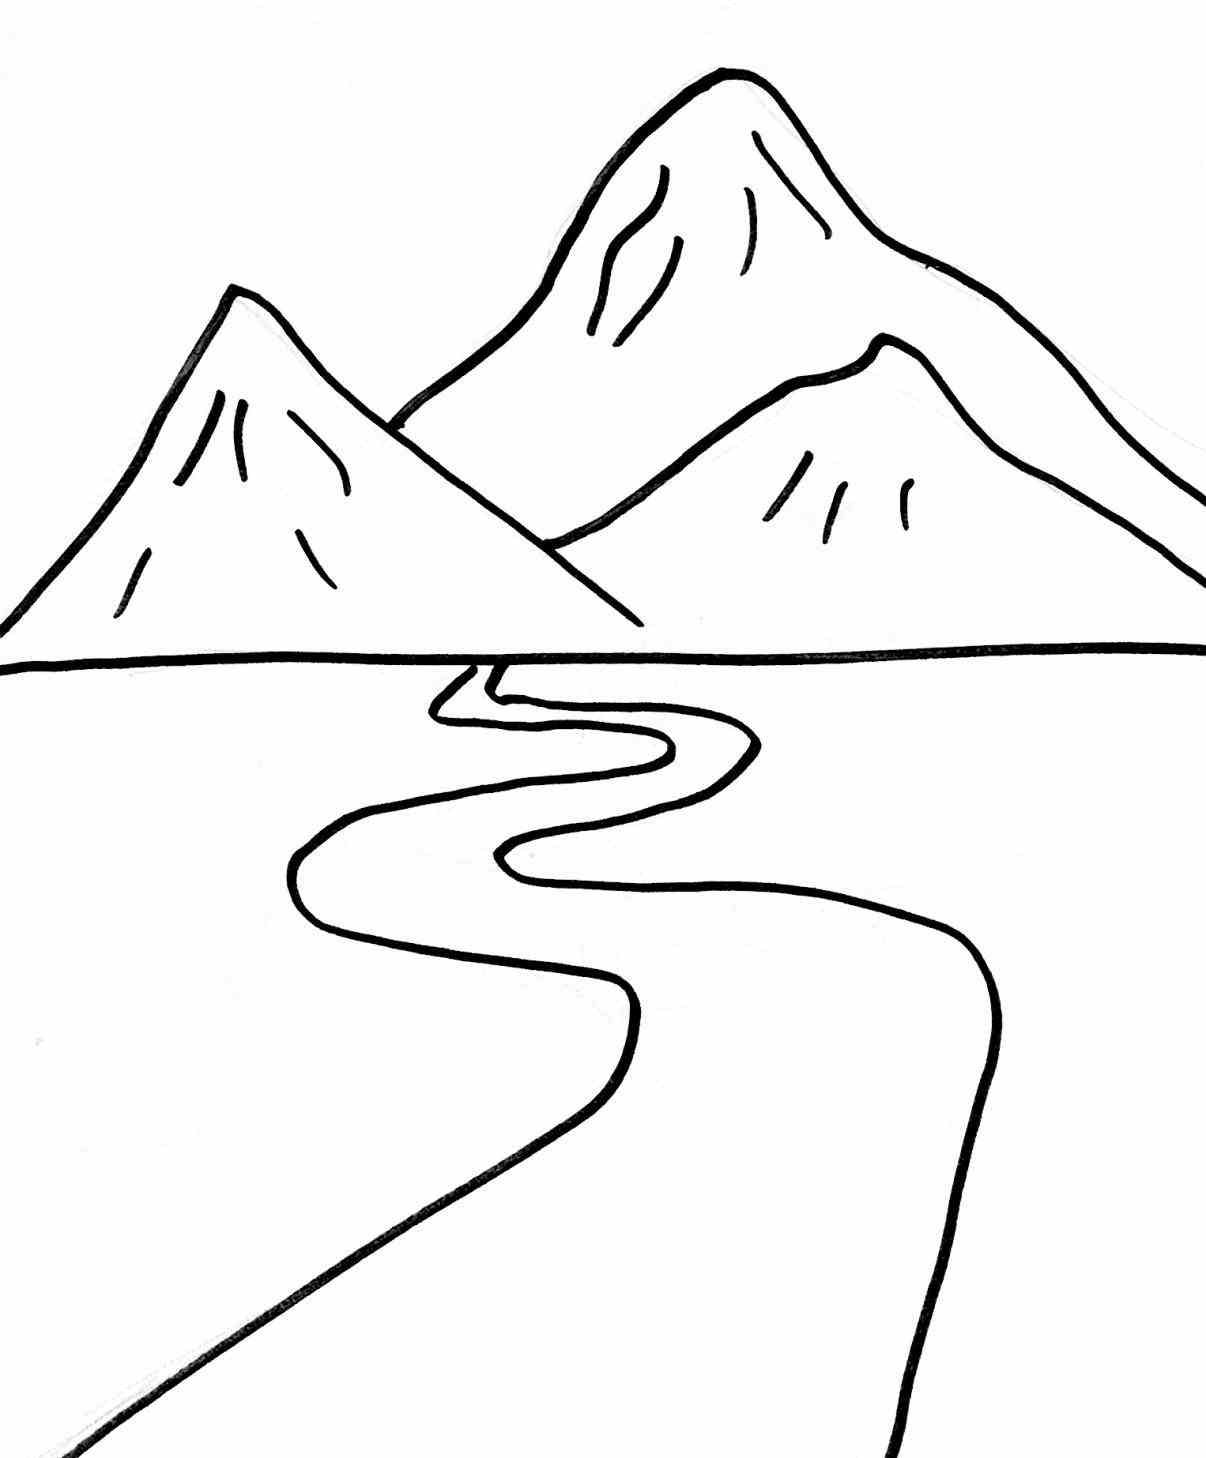 Red river valley clipart black and white banner transparent River Clipart Black And White | Free download best River ... banner transparent